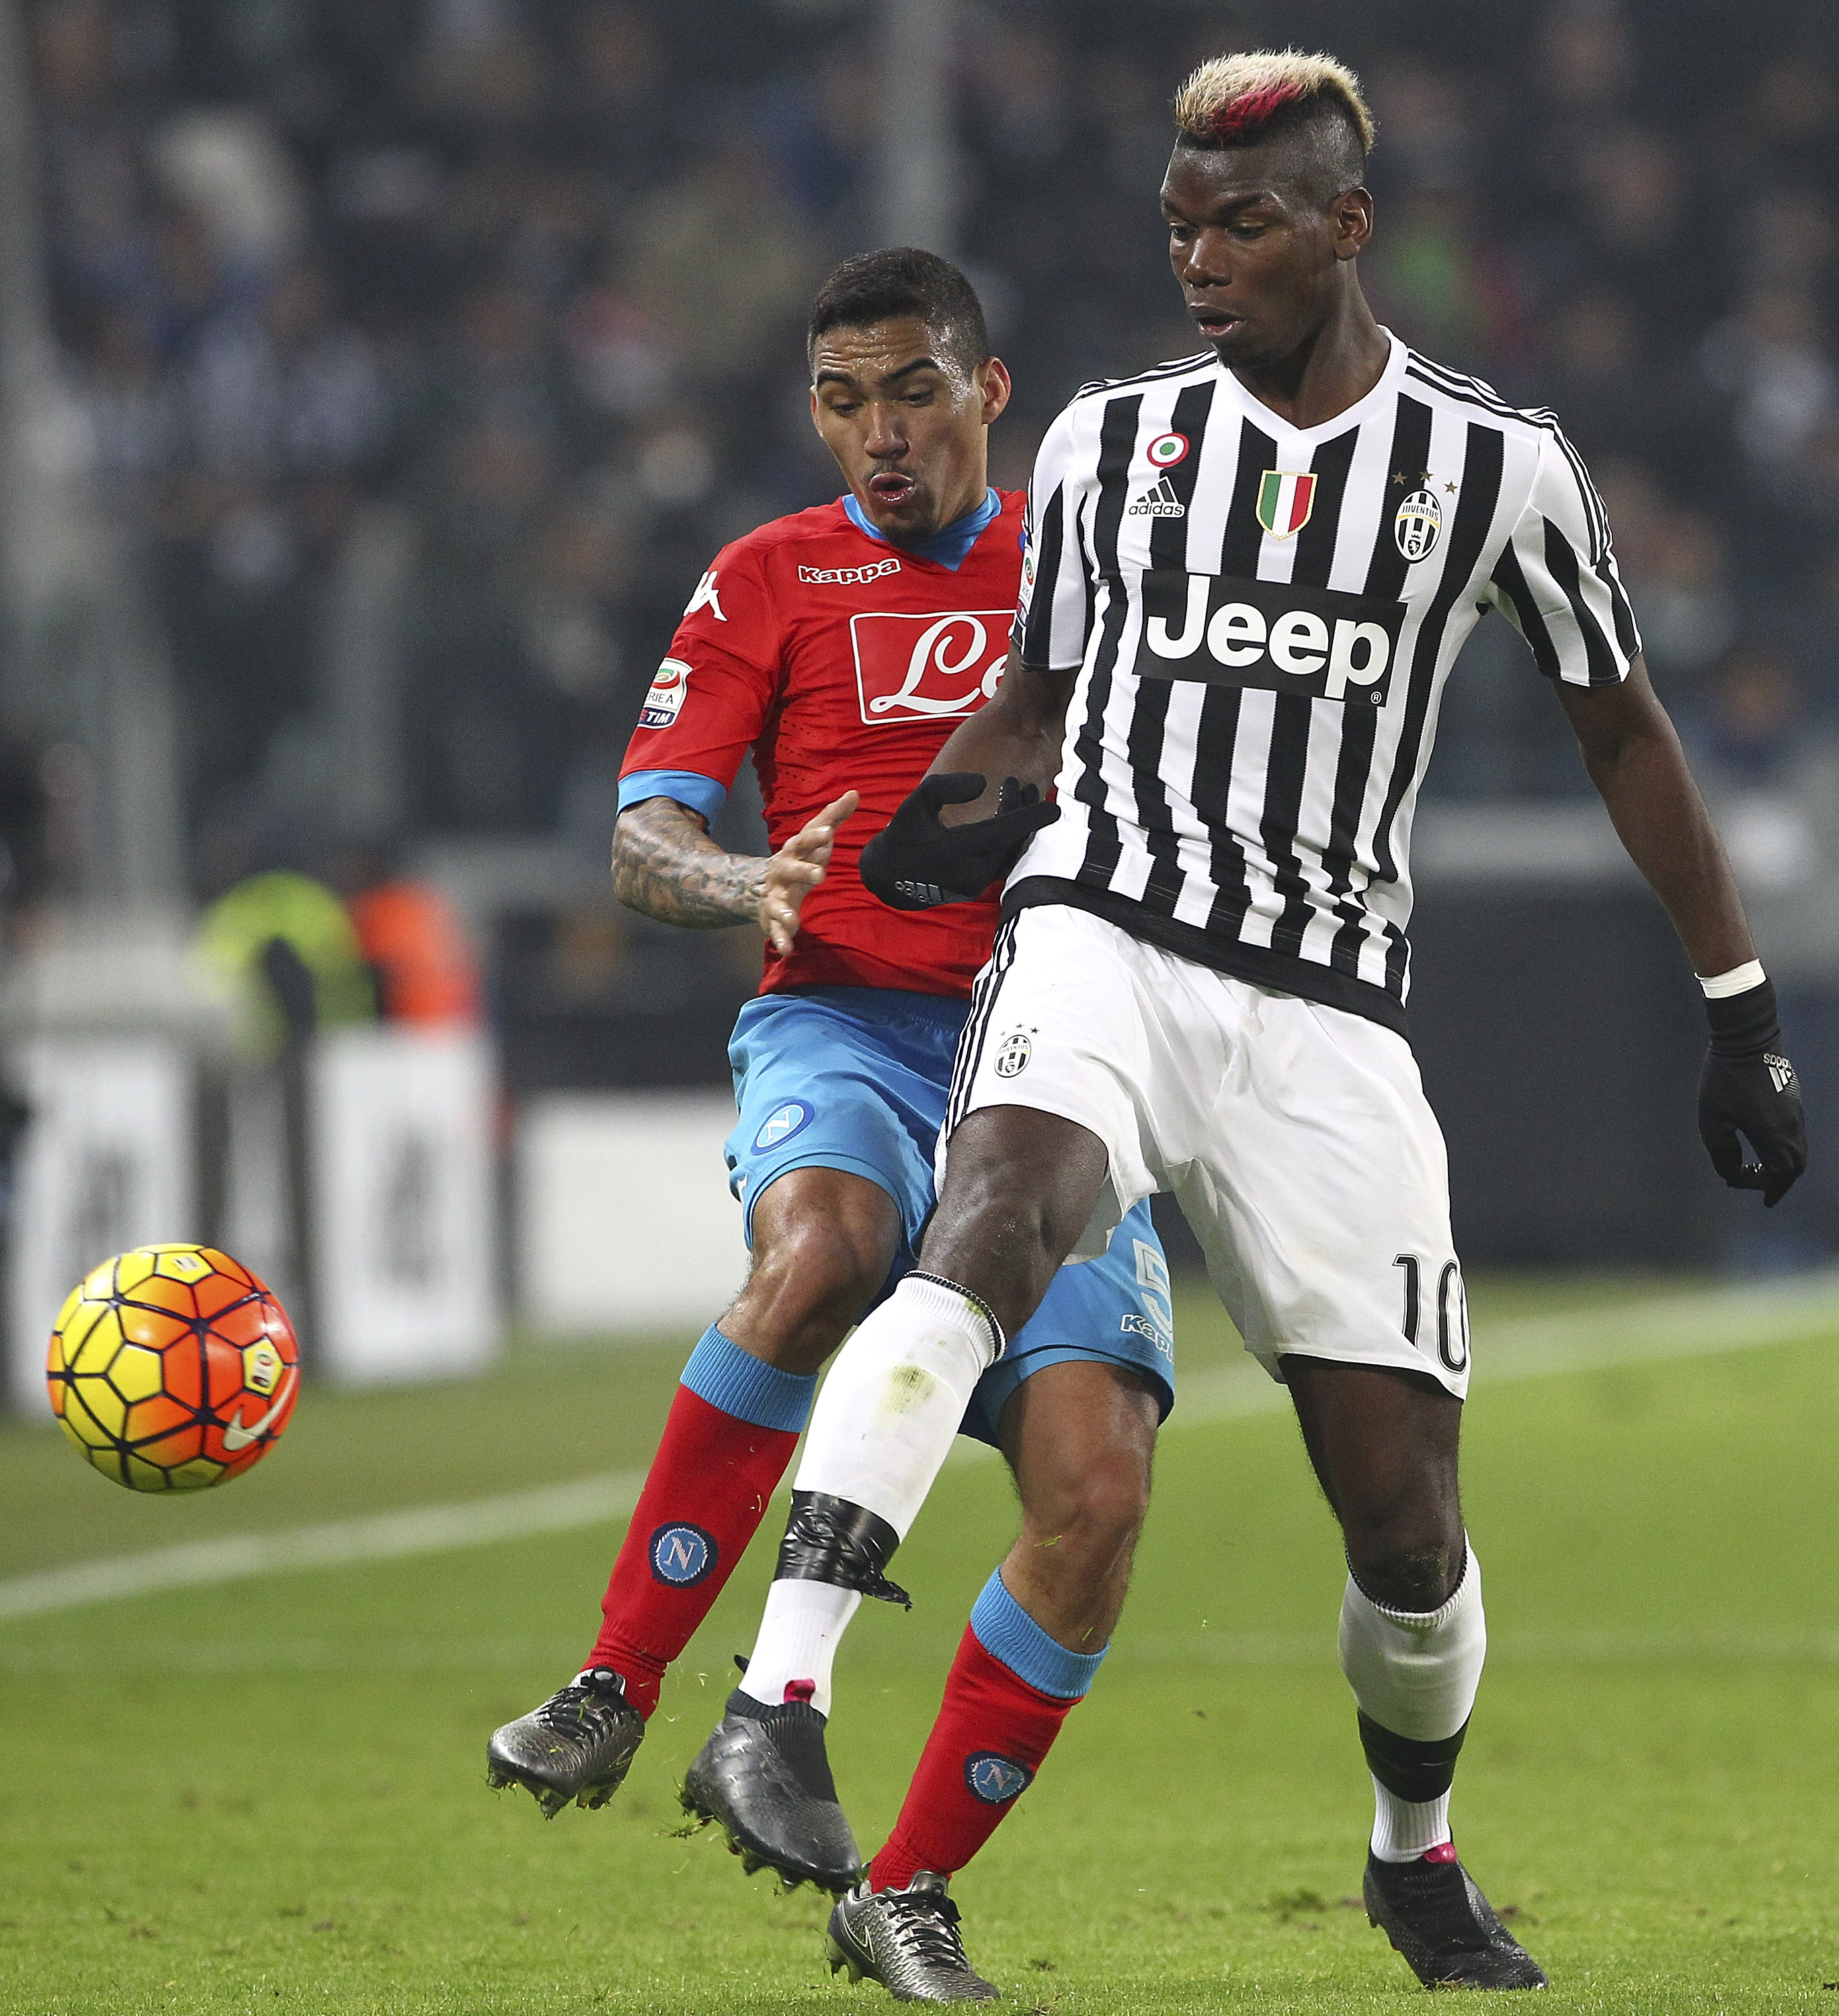 Juventus vs. Napoli, Serie A 2016: Final score 1-0, Juventus strike late and take first place